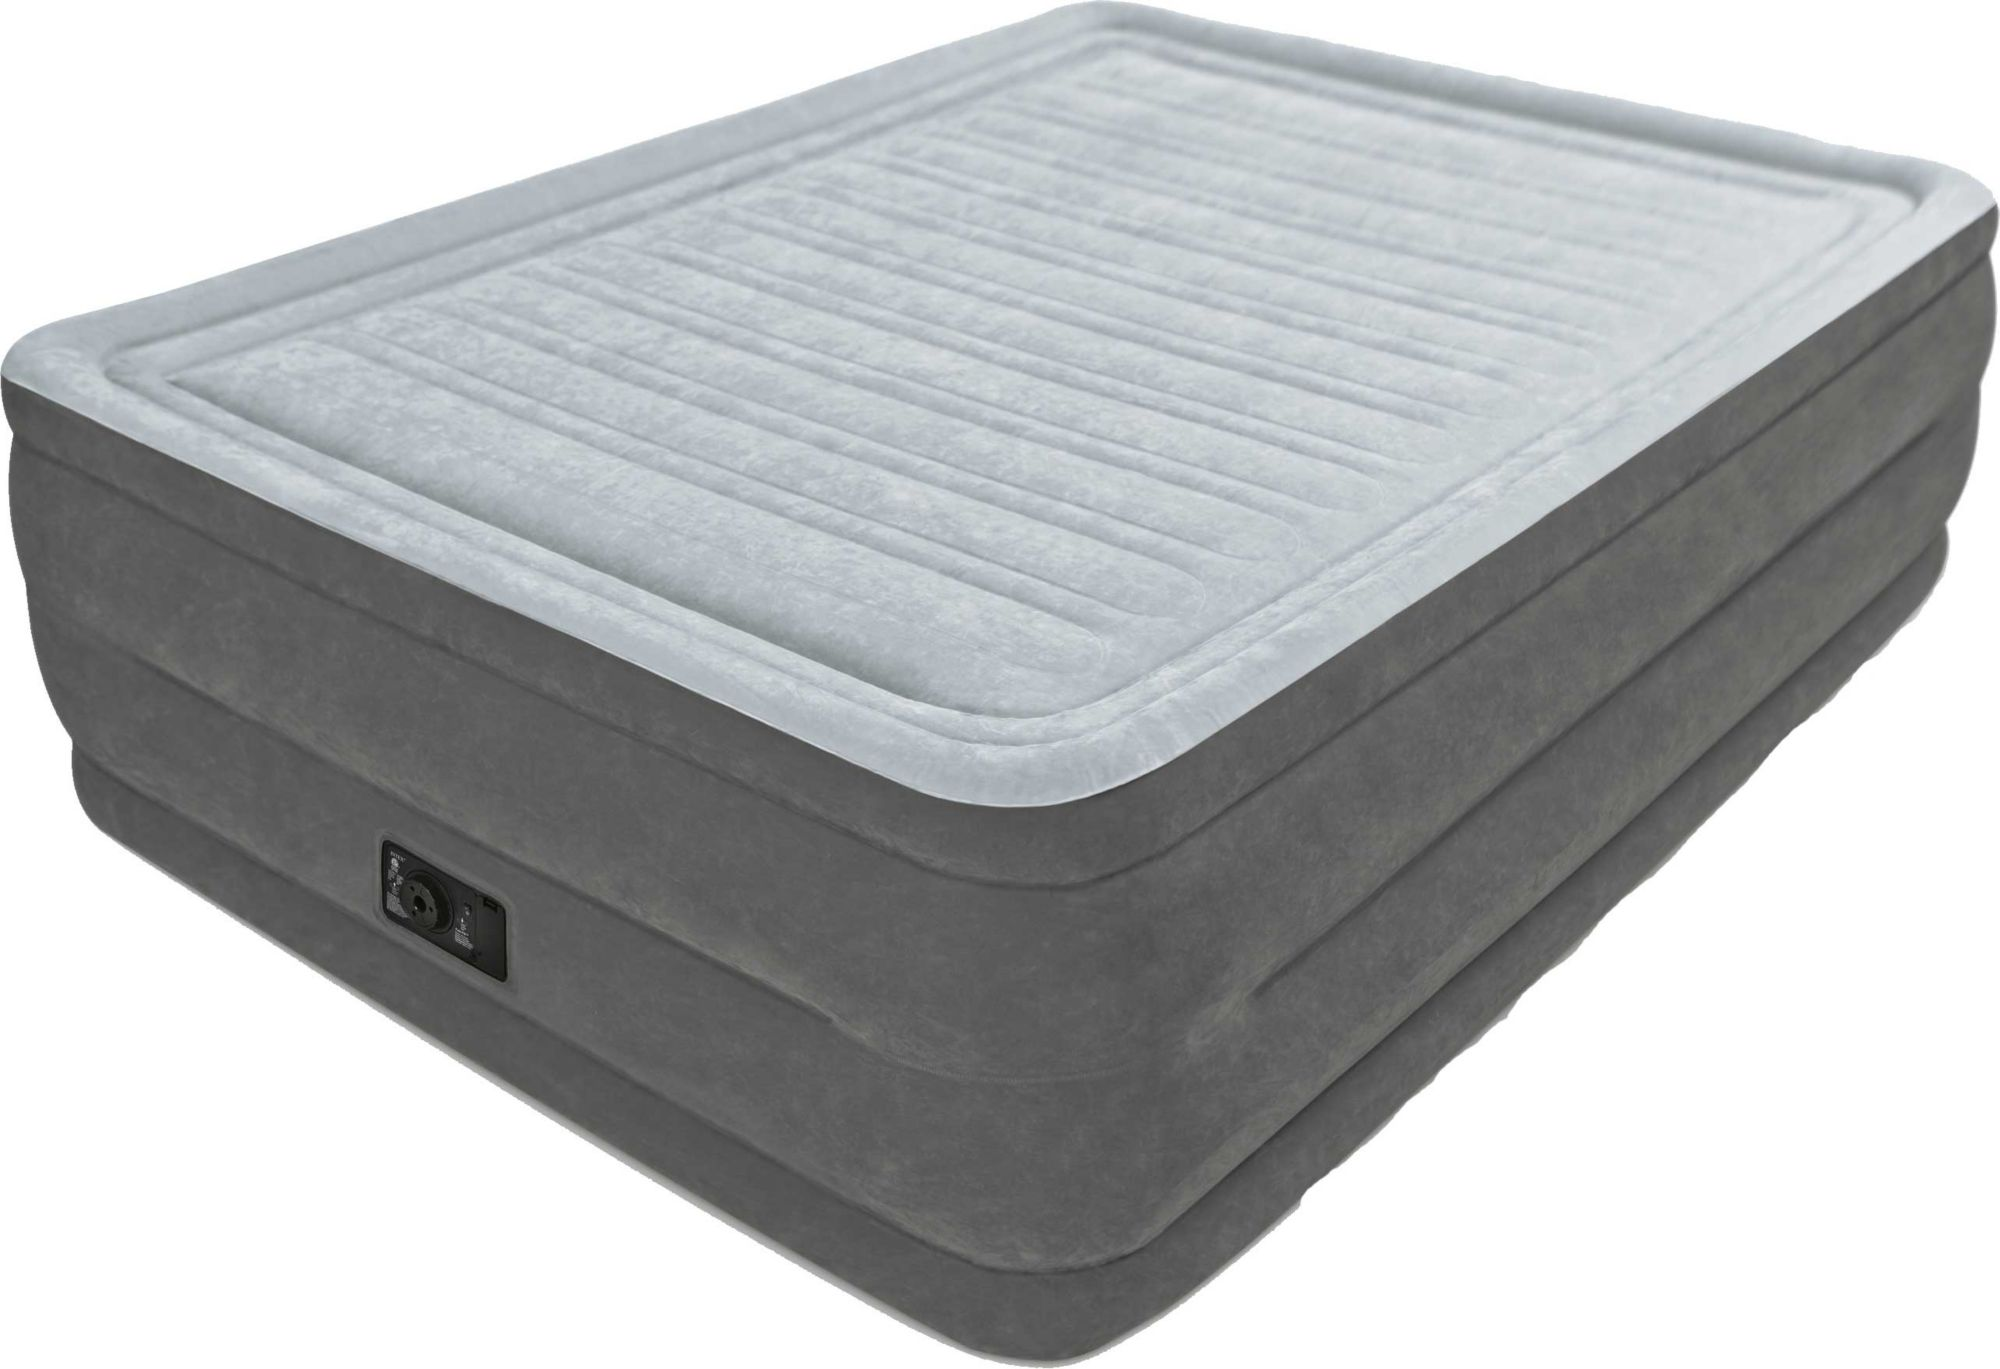 Product Image Intex Comfort Plush Queen Air Mattress With Built In Pump